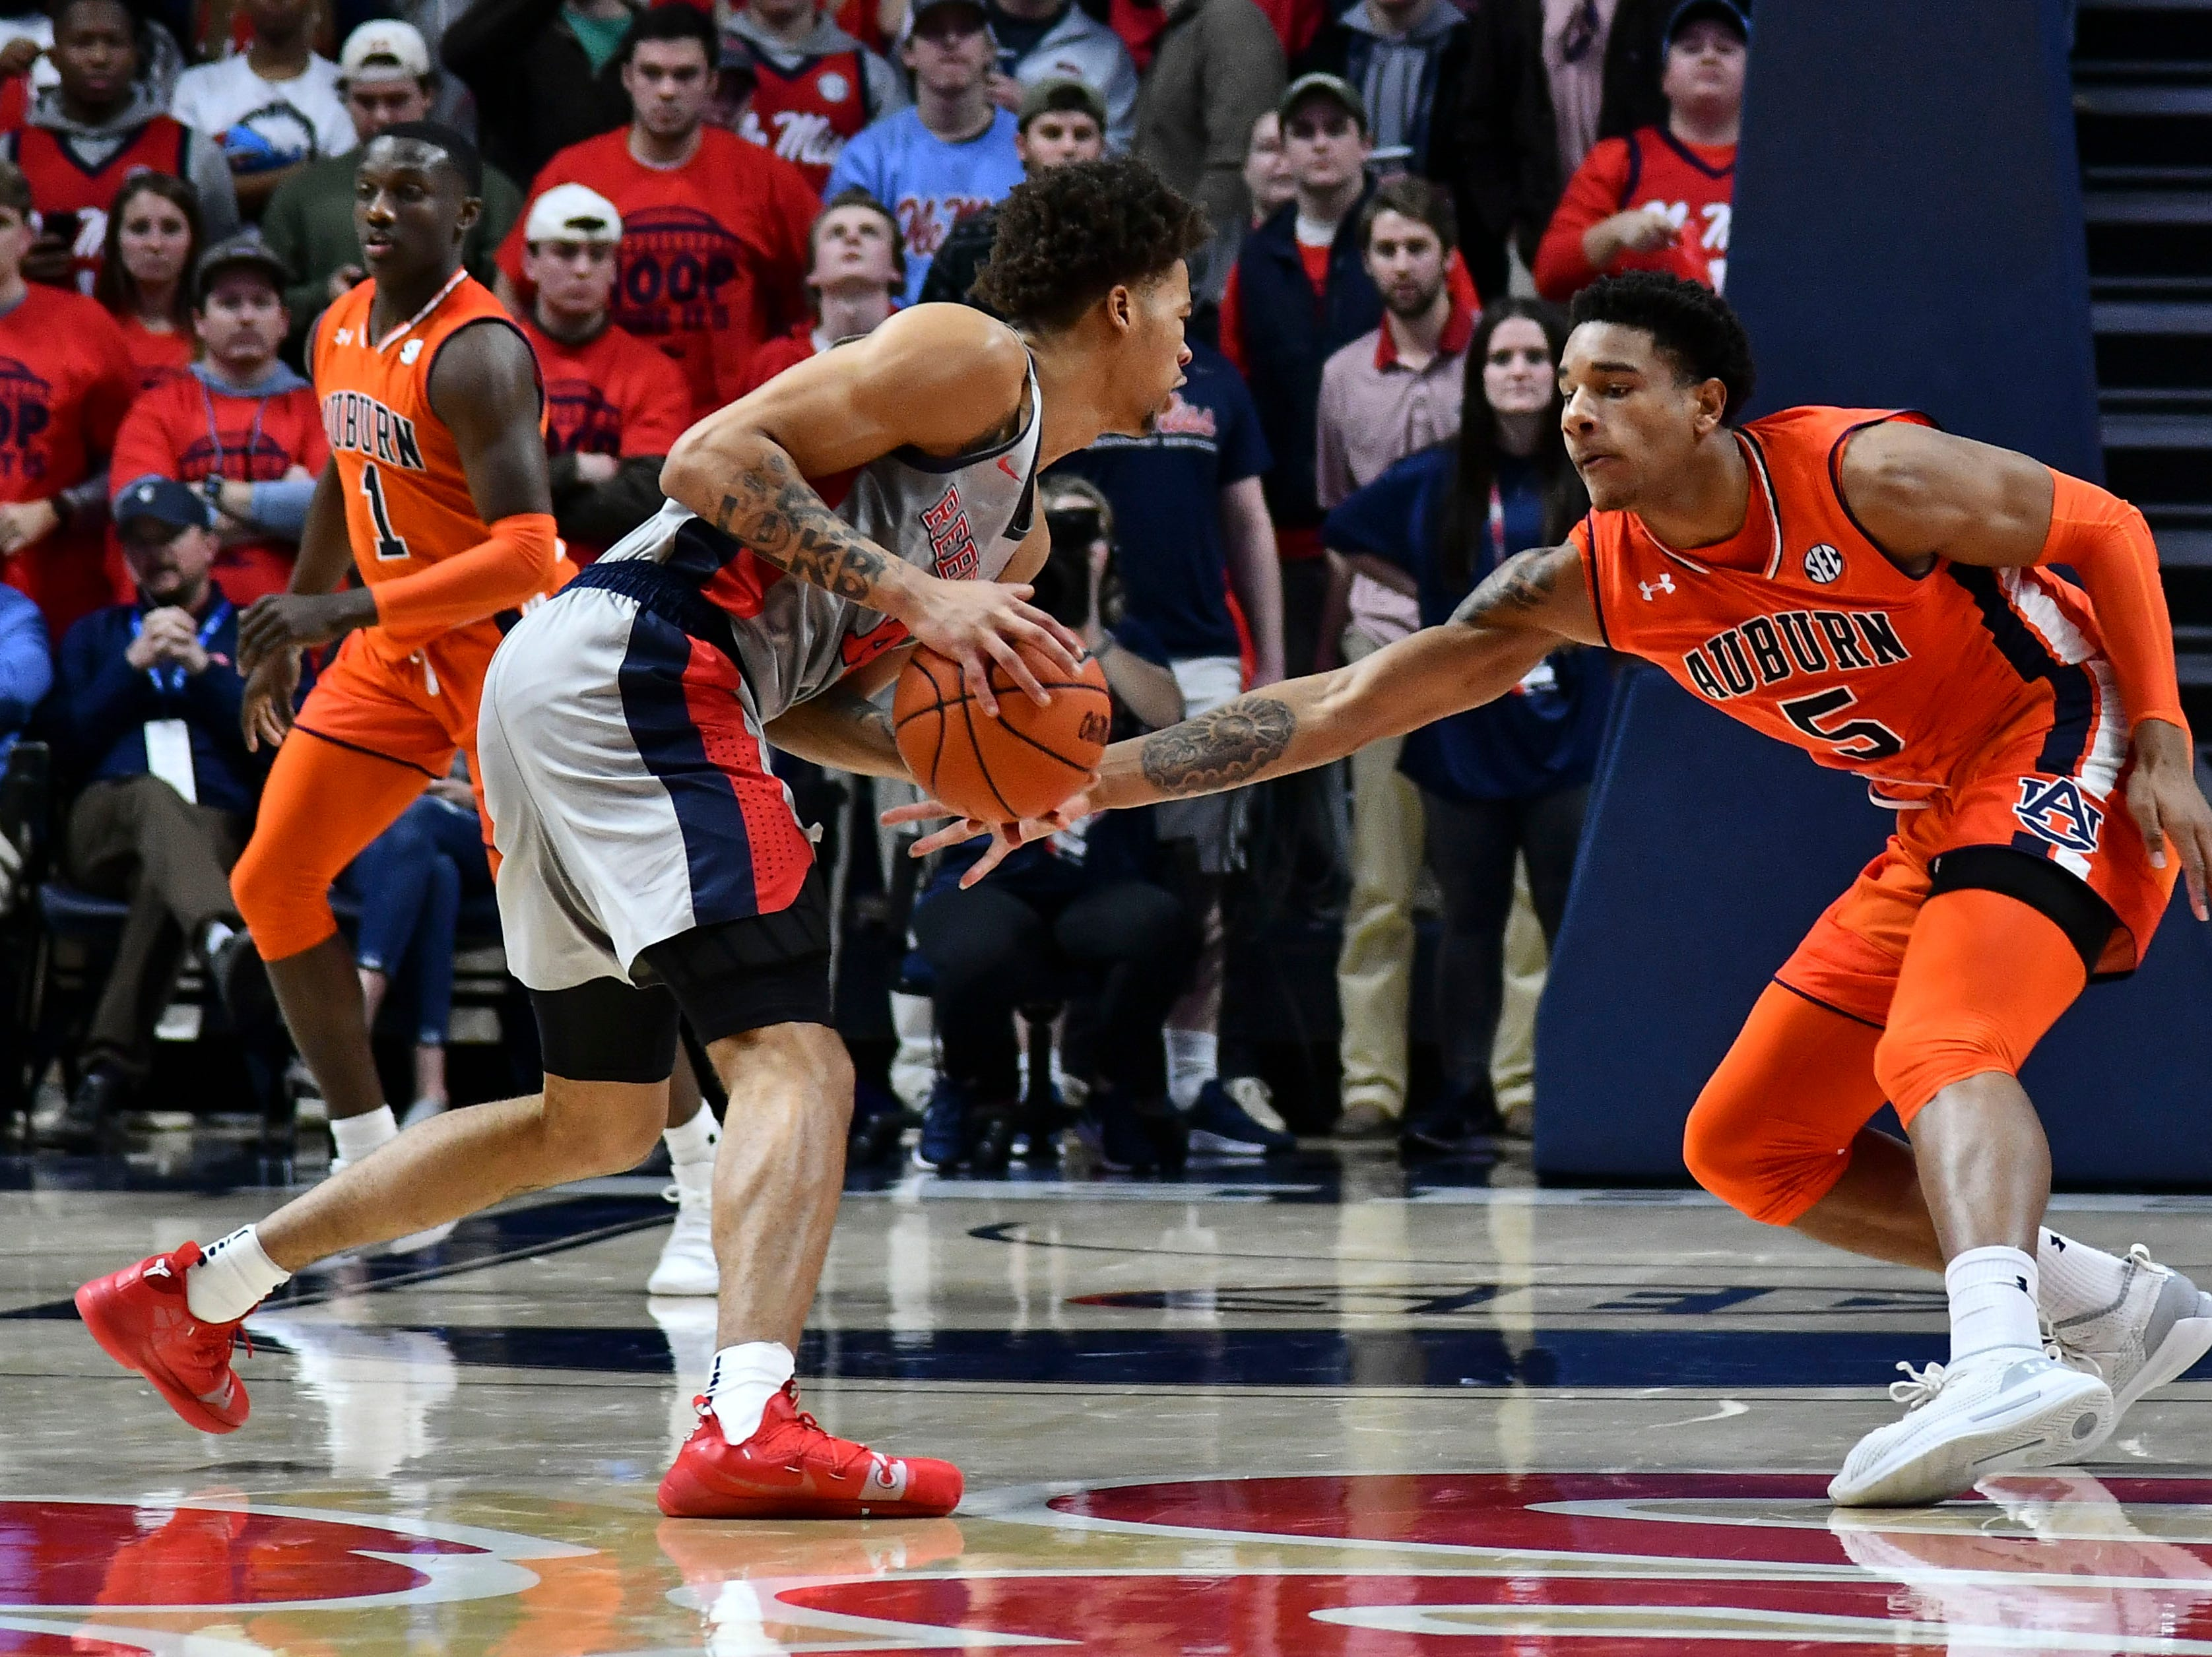 Jan 9, 2019; Oxford, MS, USA; Mississippi Rebels forward KJ Buffen (14) handles the ball defended by Auburn Tigers forward Chuma Okeke (5) during the first quarter at The Pavilion at Ole Miss. Mandatory Credit: Matt Bush-USA TODAY Sports